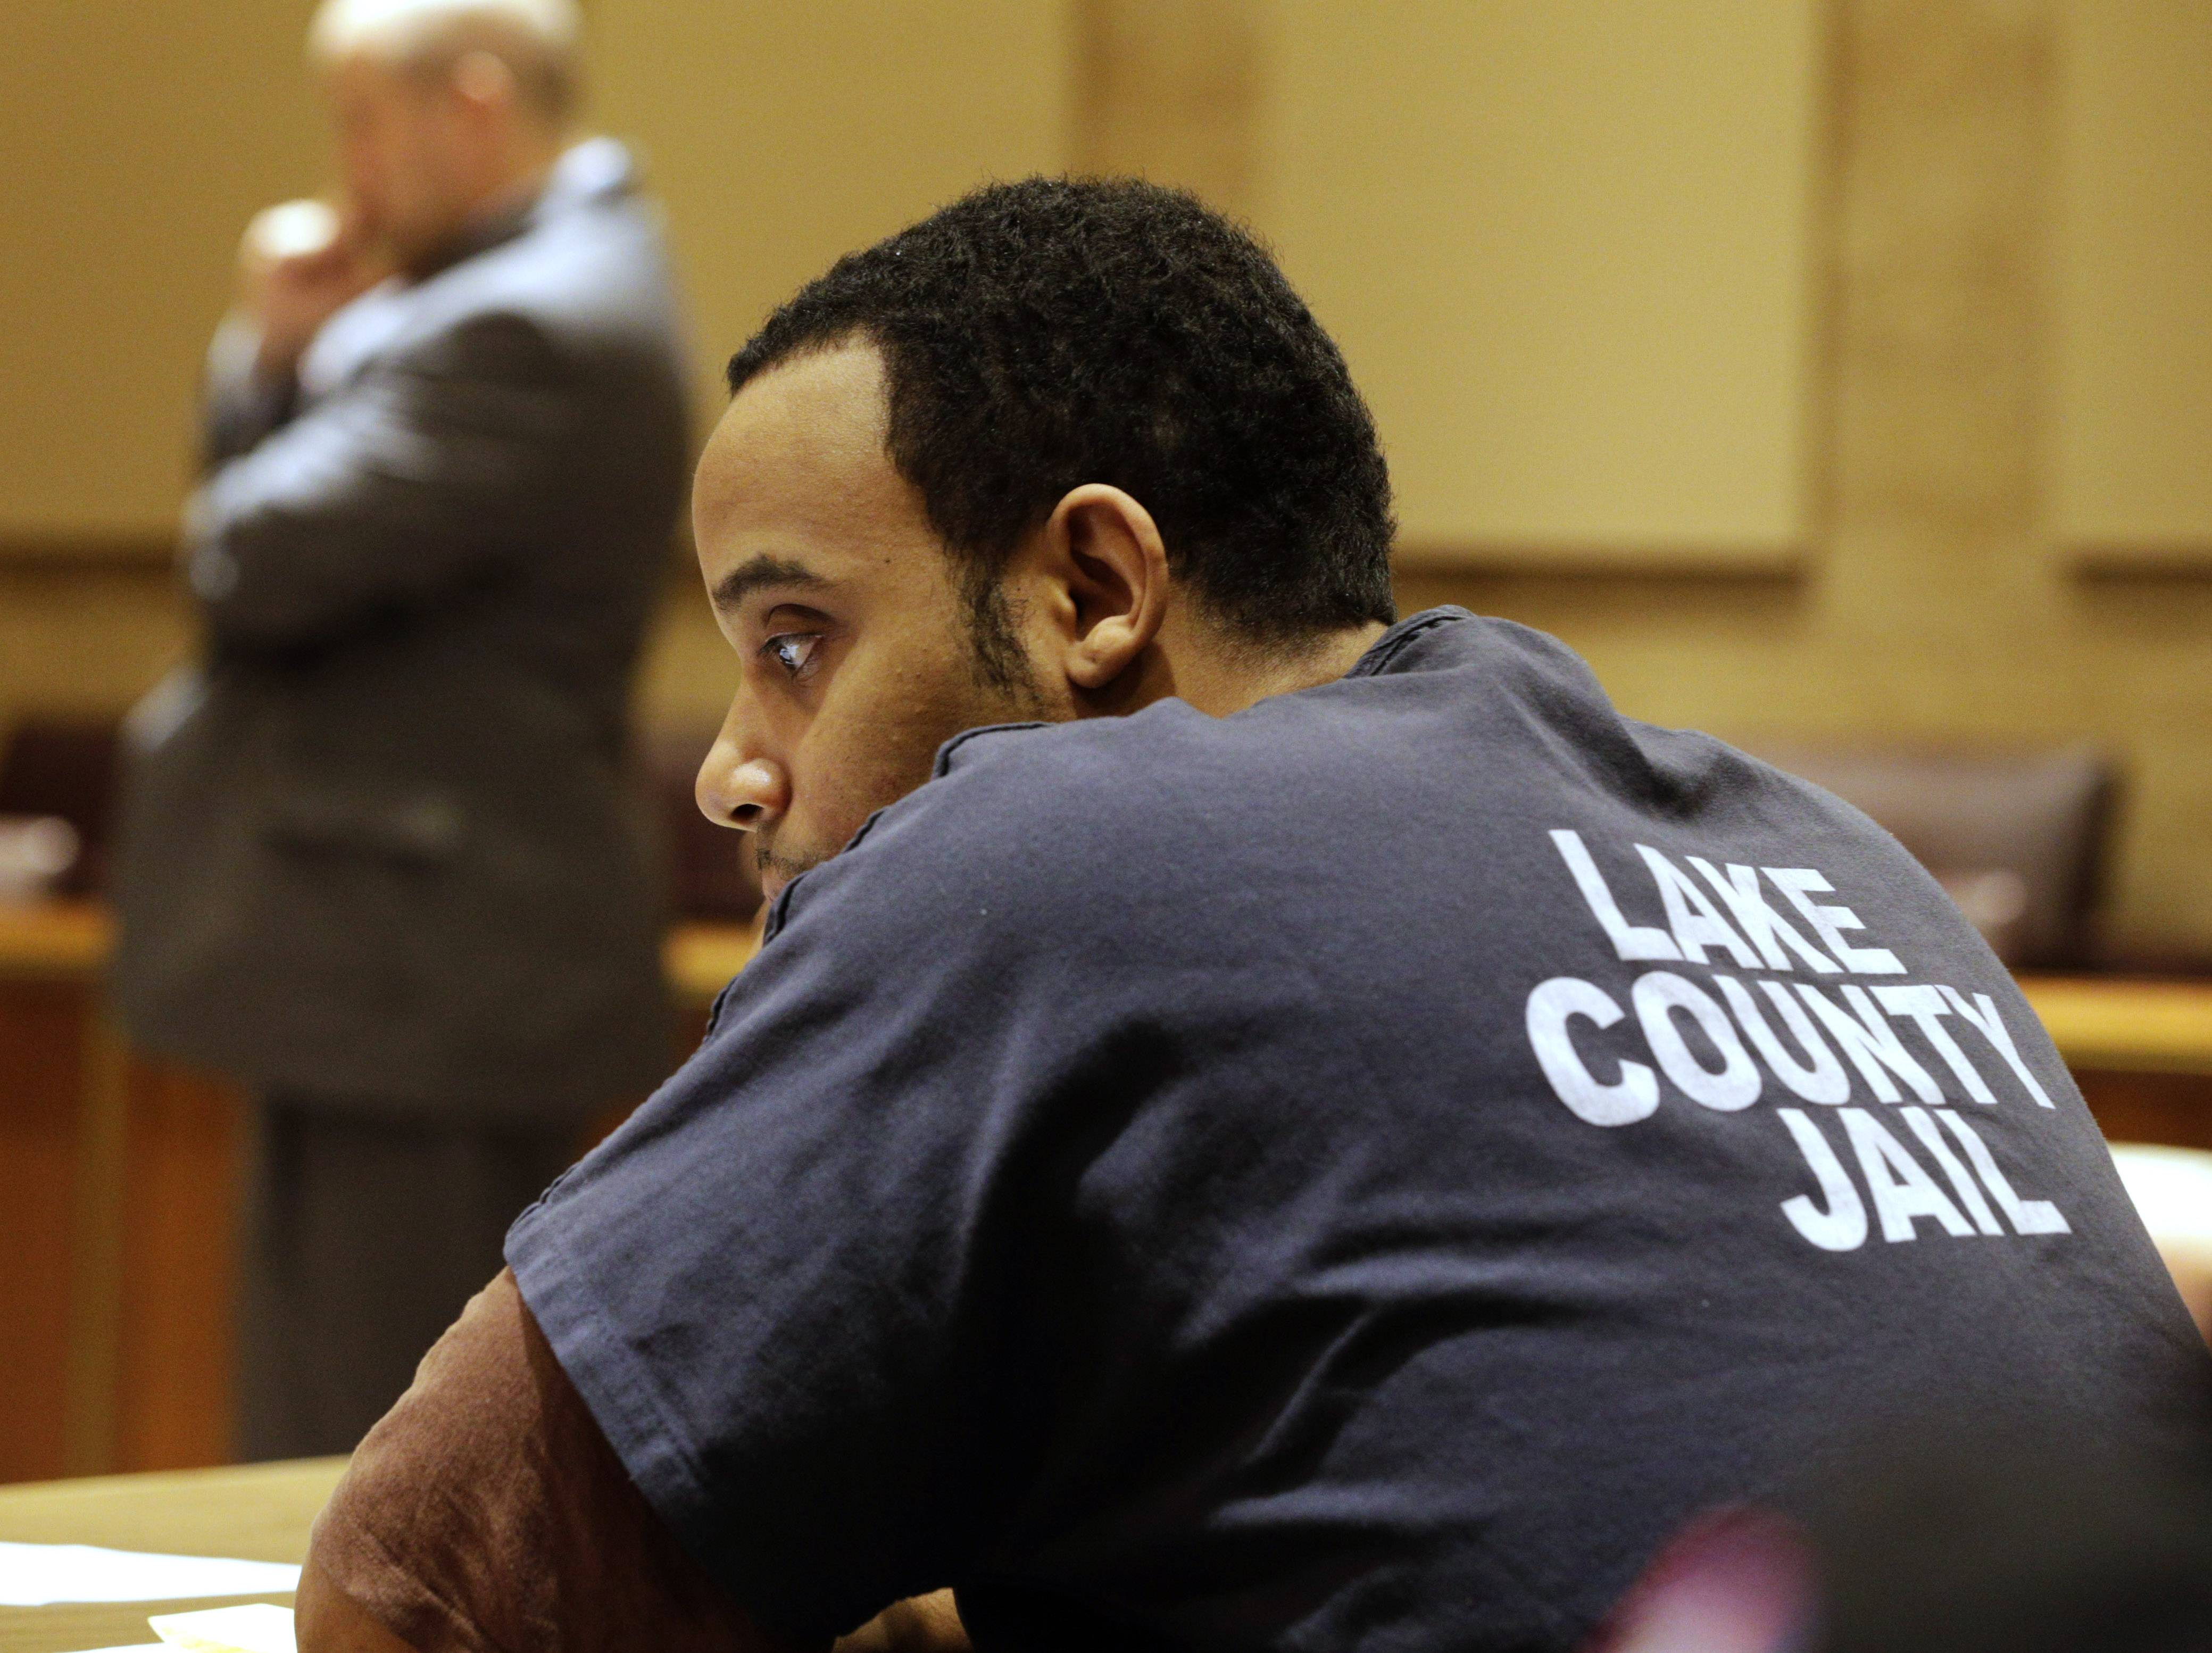 Demetries Thorpe, 27, attends his sentencing hearing at the Lake County Courthouse in Waukegan on Tuesday. Thorpe, who admitted to killing 5-month-old Joshua Summeries and then dumping his body into a garbage can, was sentenced to 30 years in prison.